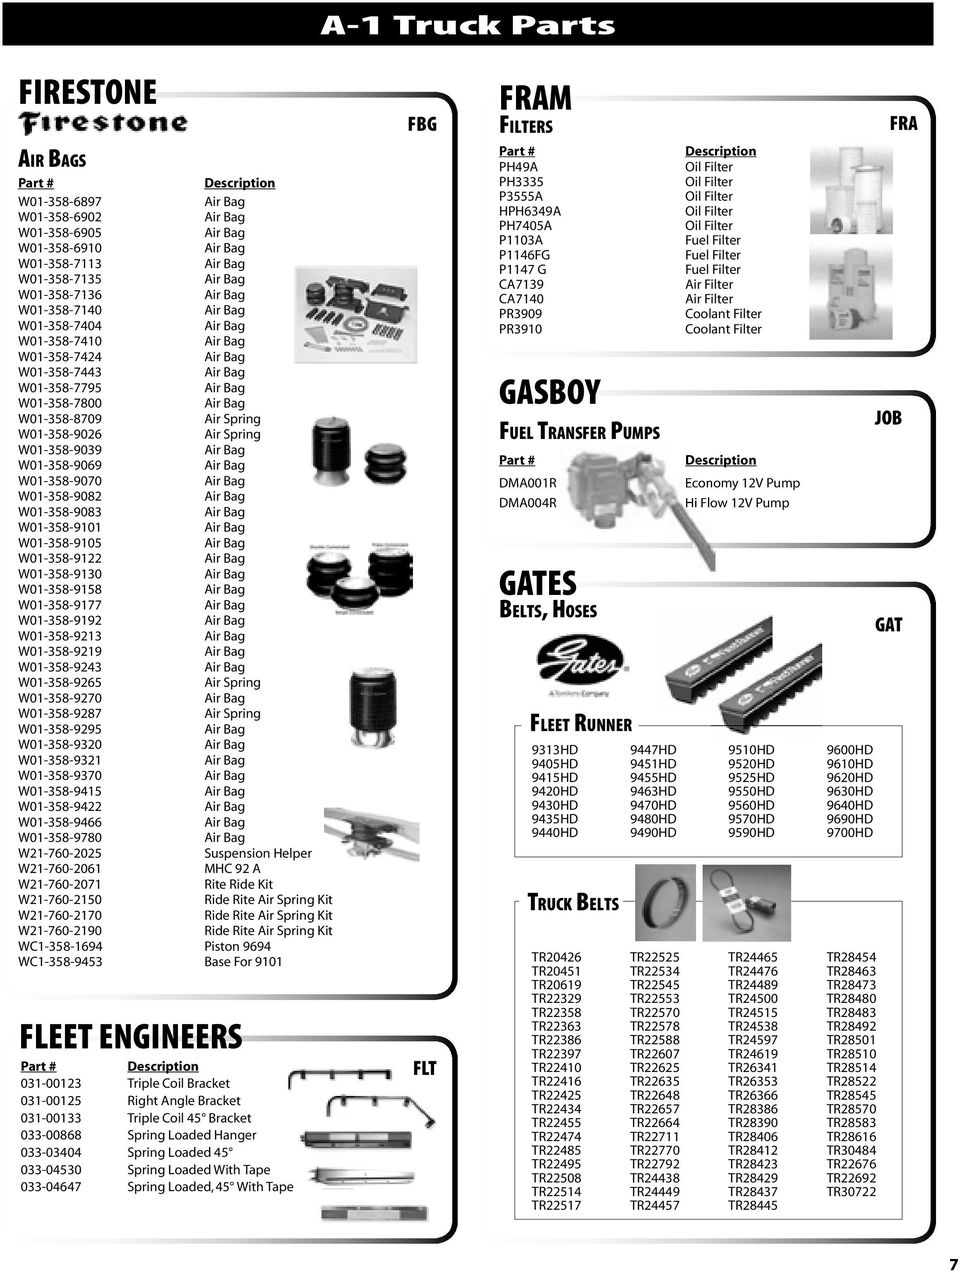 A 1 Truck Parts Speciality Book Index Pdf Kubota Fuel Filter Mount W01 358 9158 9177 9192